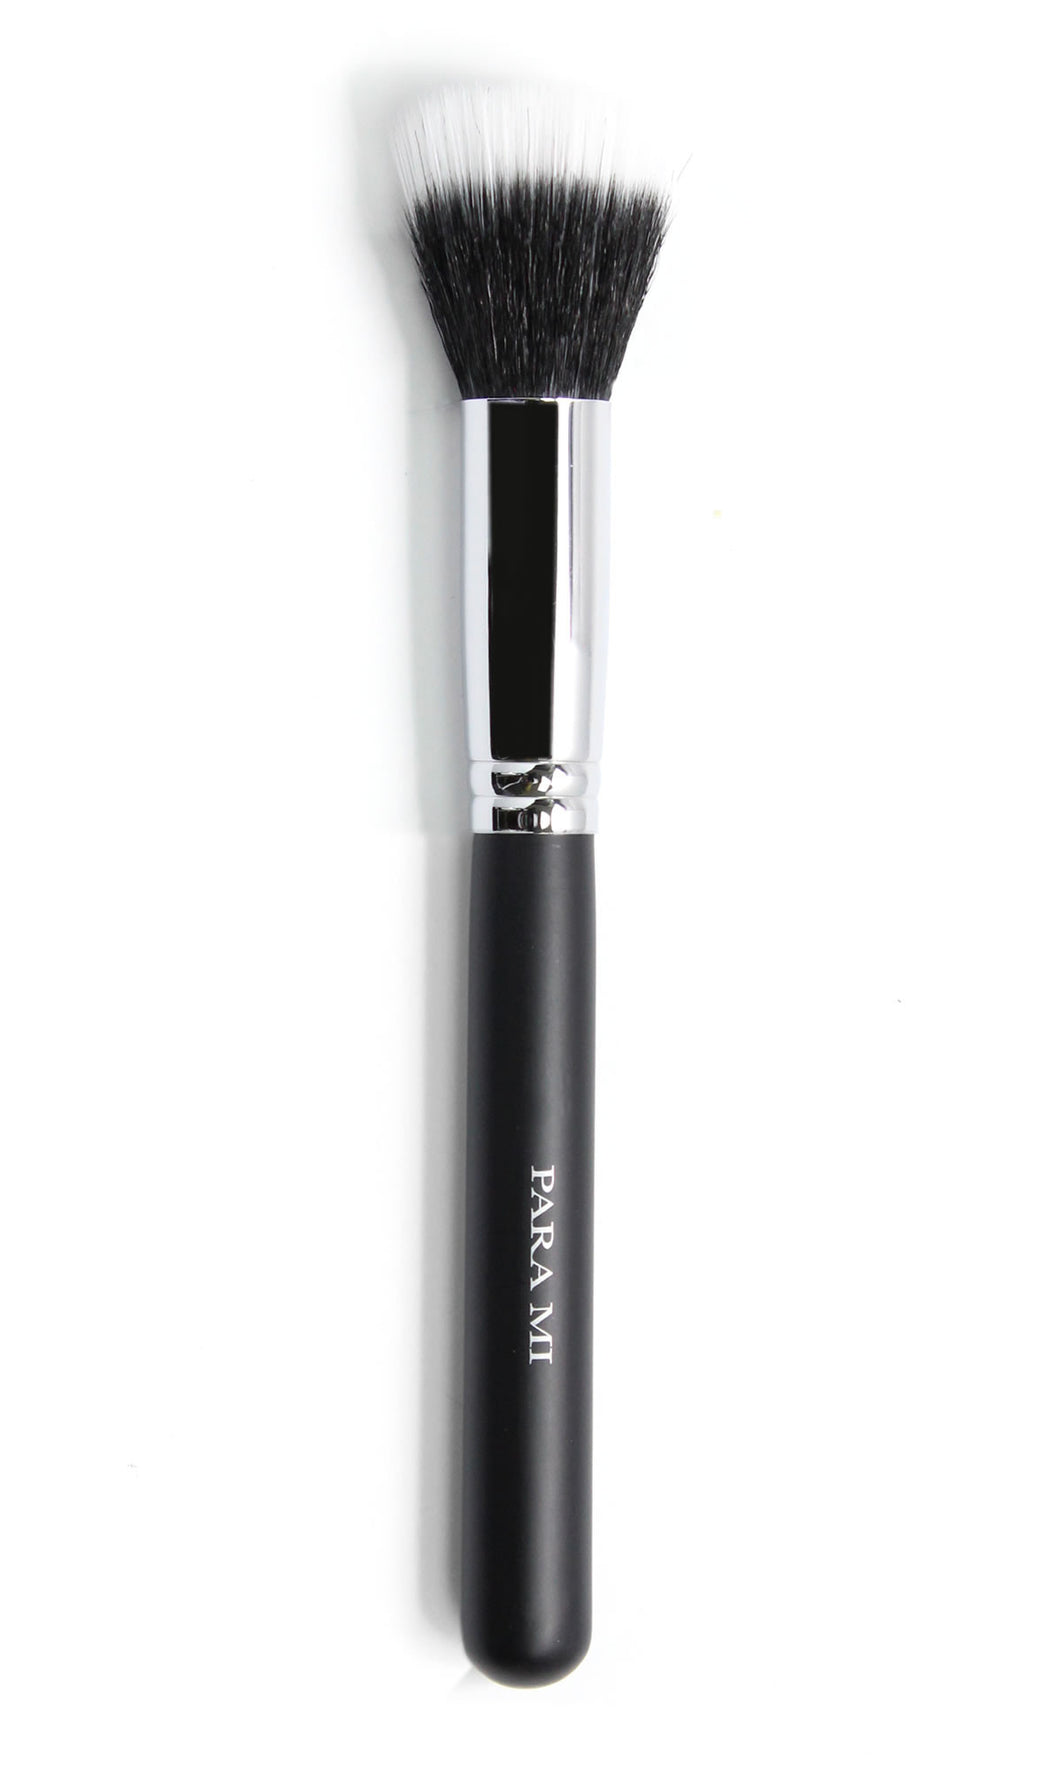 Duet Stippling Brush 951, a black and chrome brush, about 10 inches long  with the PARA MI logo printed on the handle.